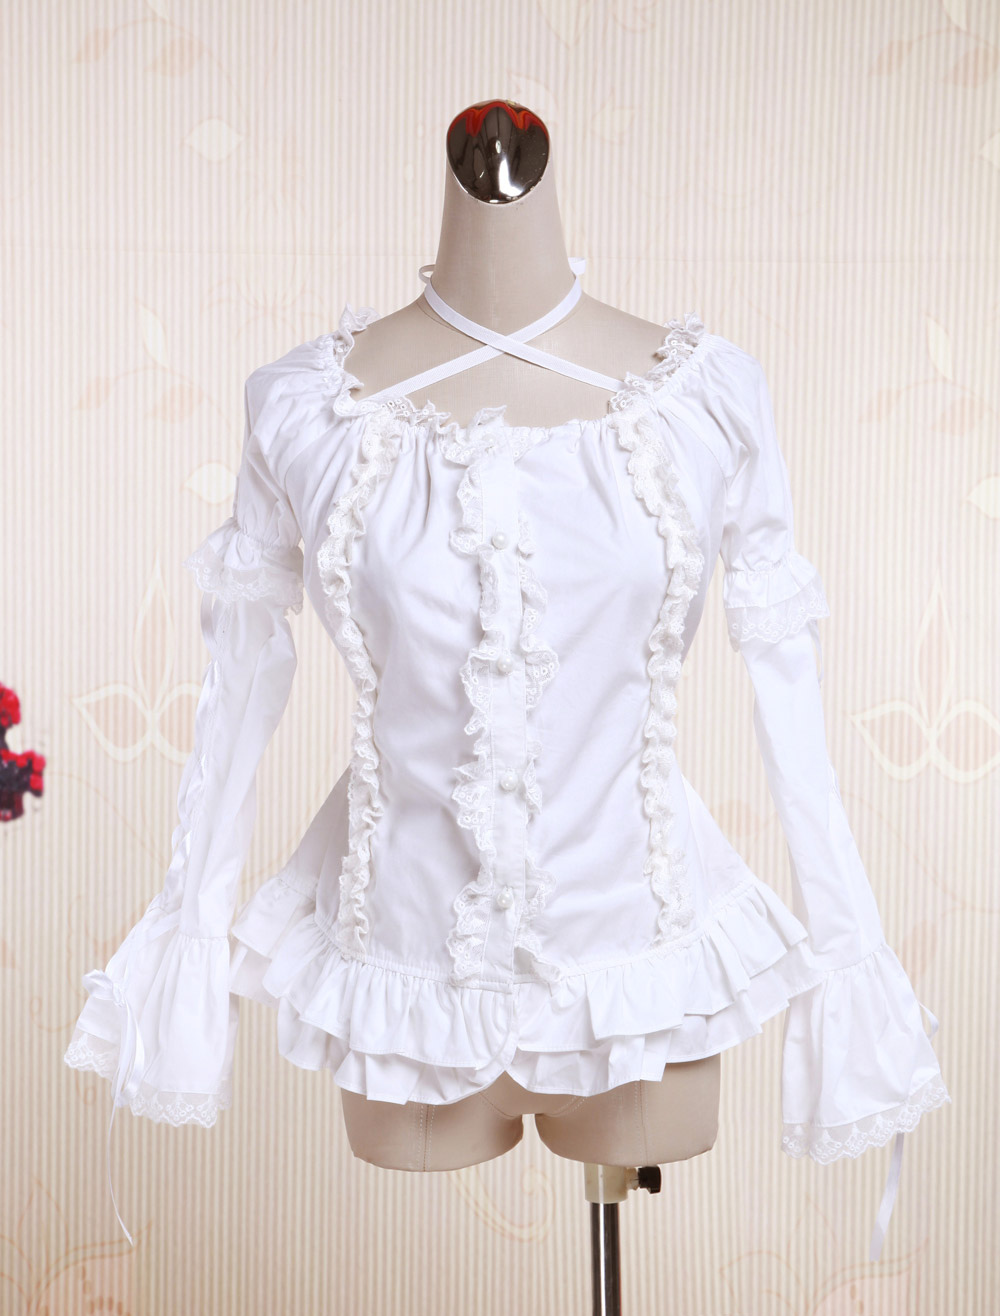 Buy White Cotton Lolita Blouse Long Hime Sleeves Neck Straps Lace Trim Ruffles for $40.99 in Milanoo store